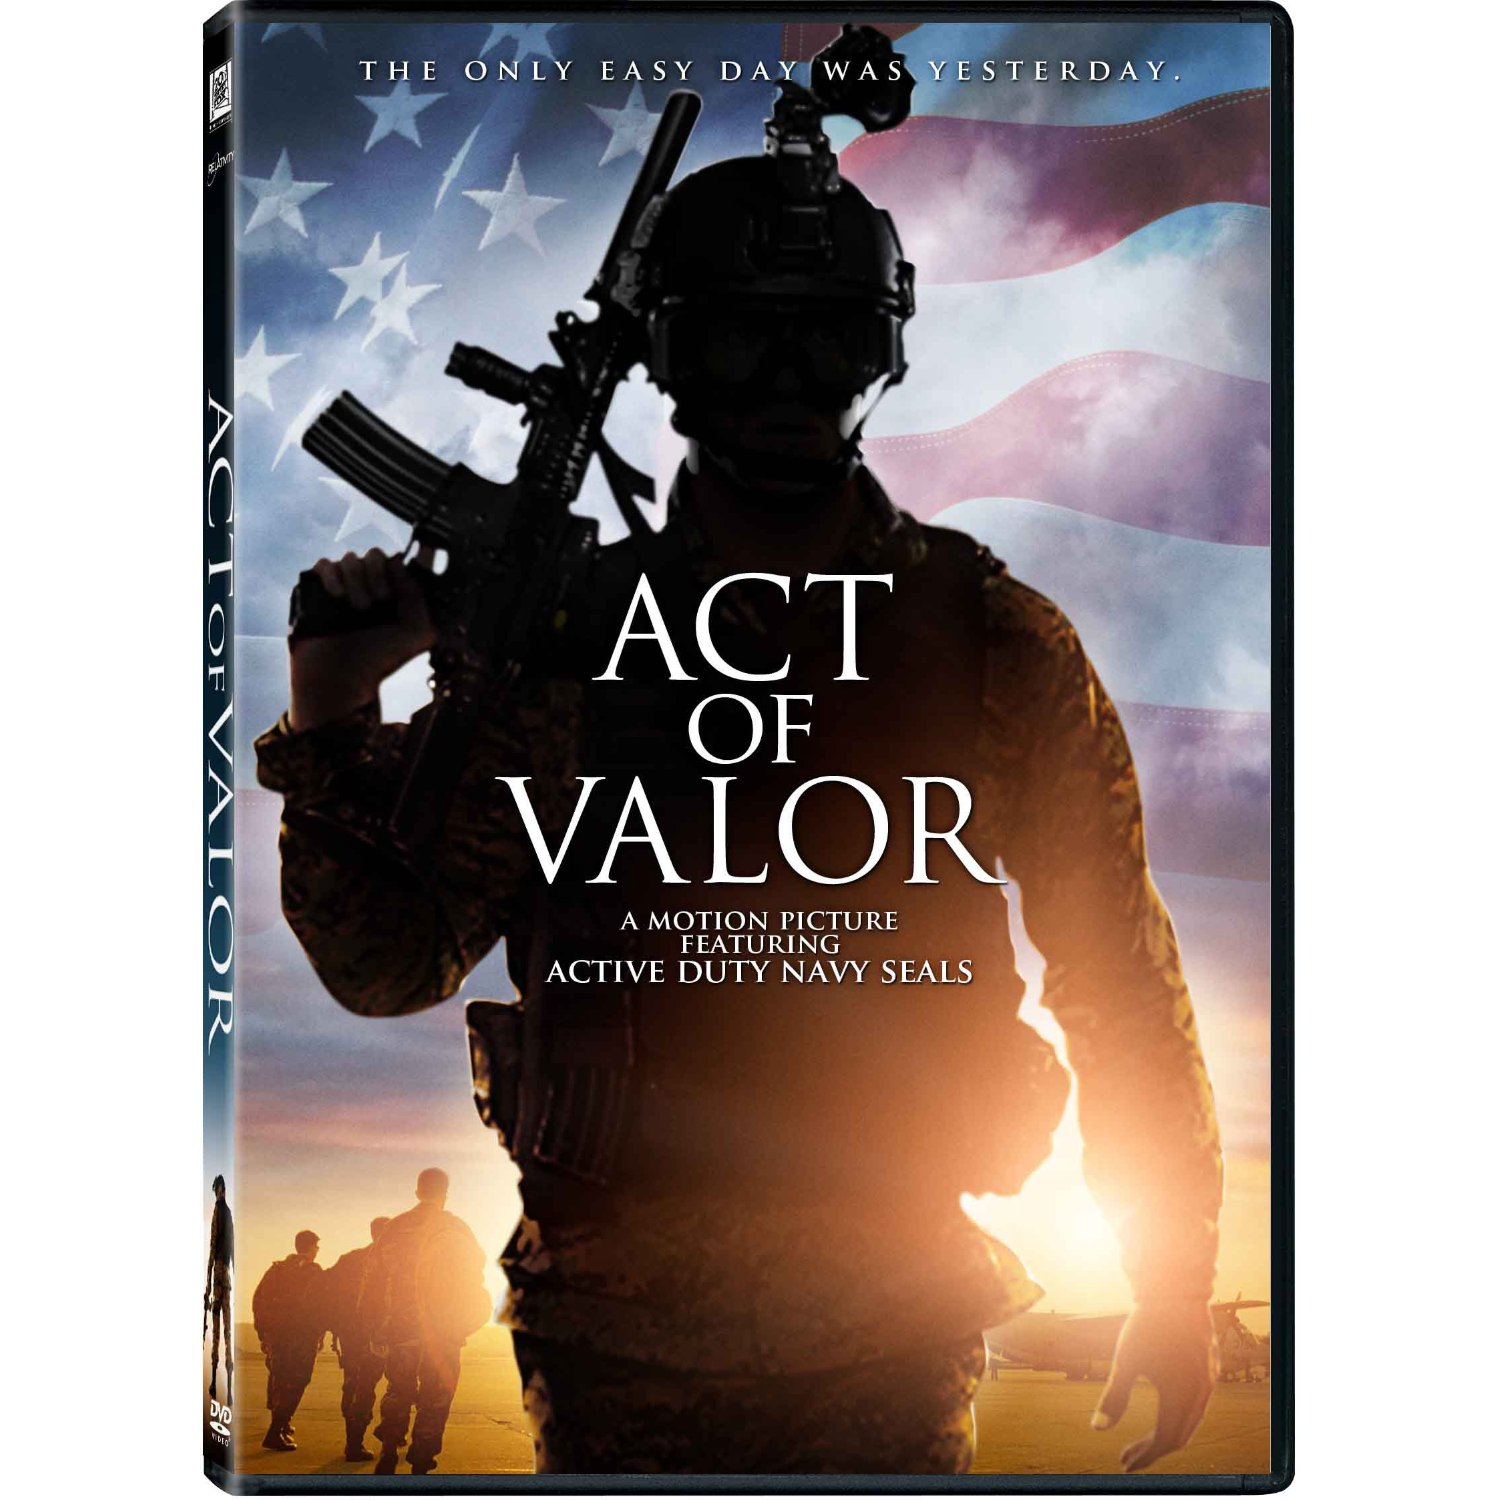 Win an Act of Valor DVD, signed by Cinematographer Shane Hurlbut